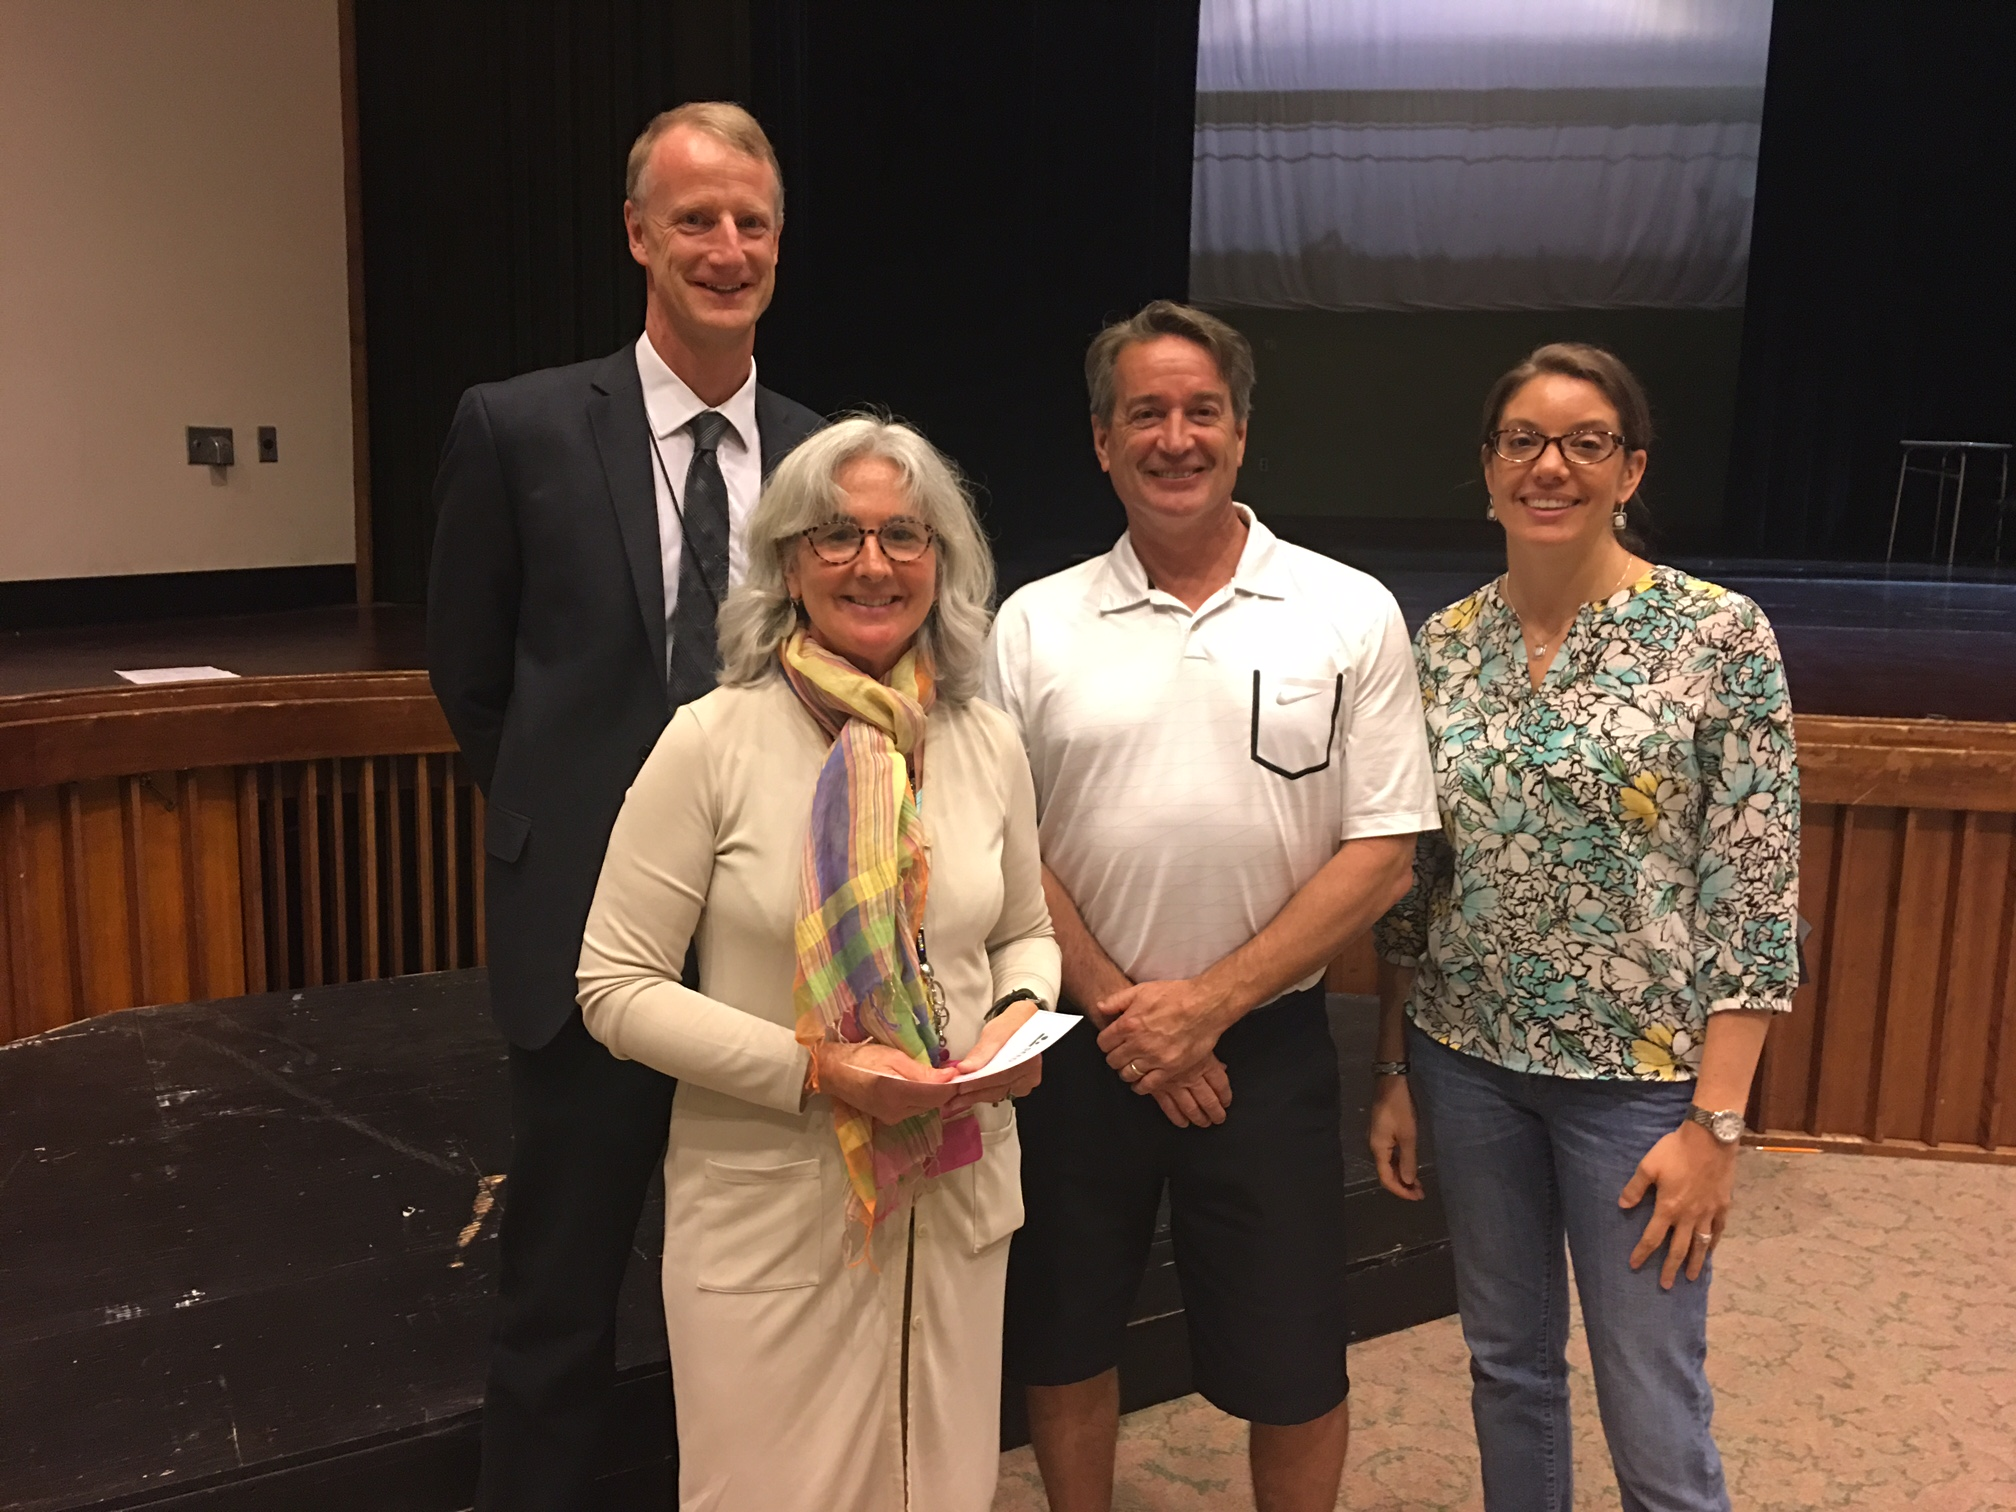 Left to right: Peter Driscoll and Susan Heeter, with SEED board members Pat Duffy and Kelly Glennon